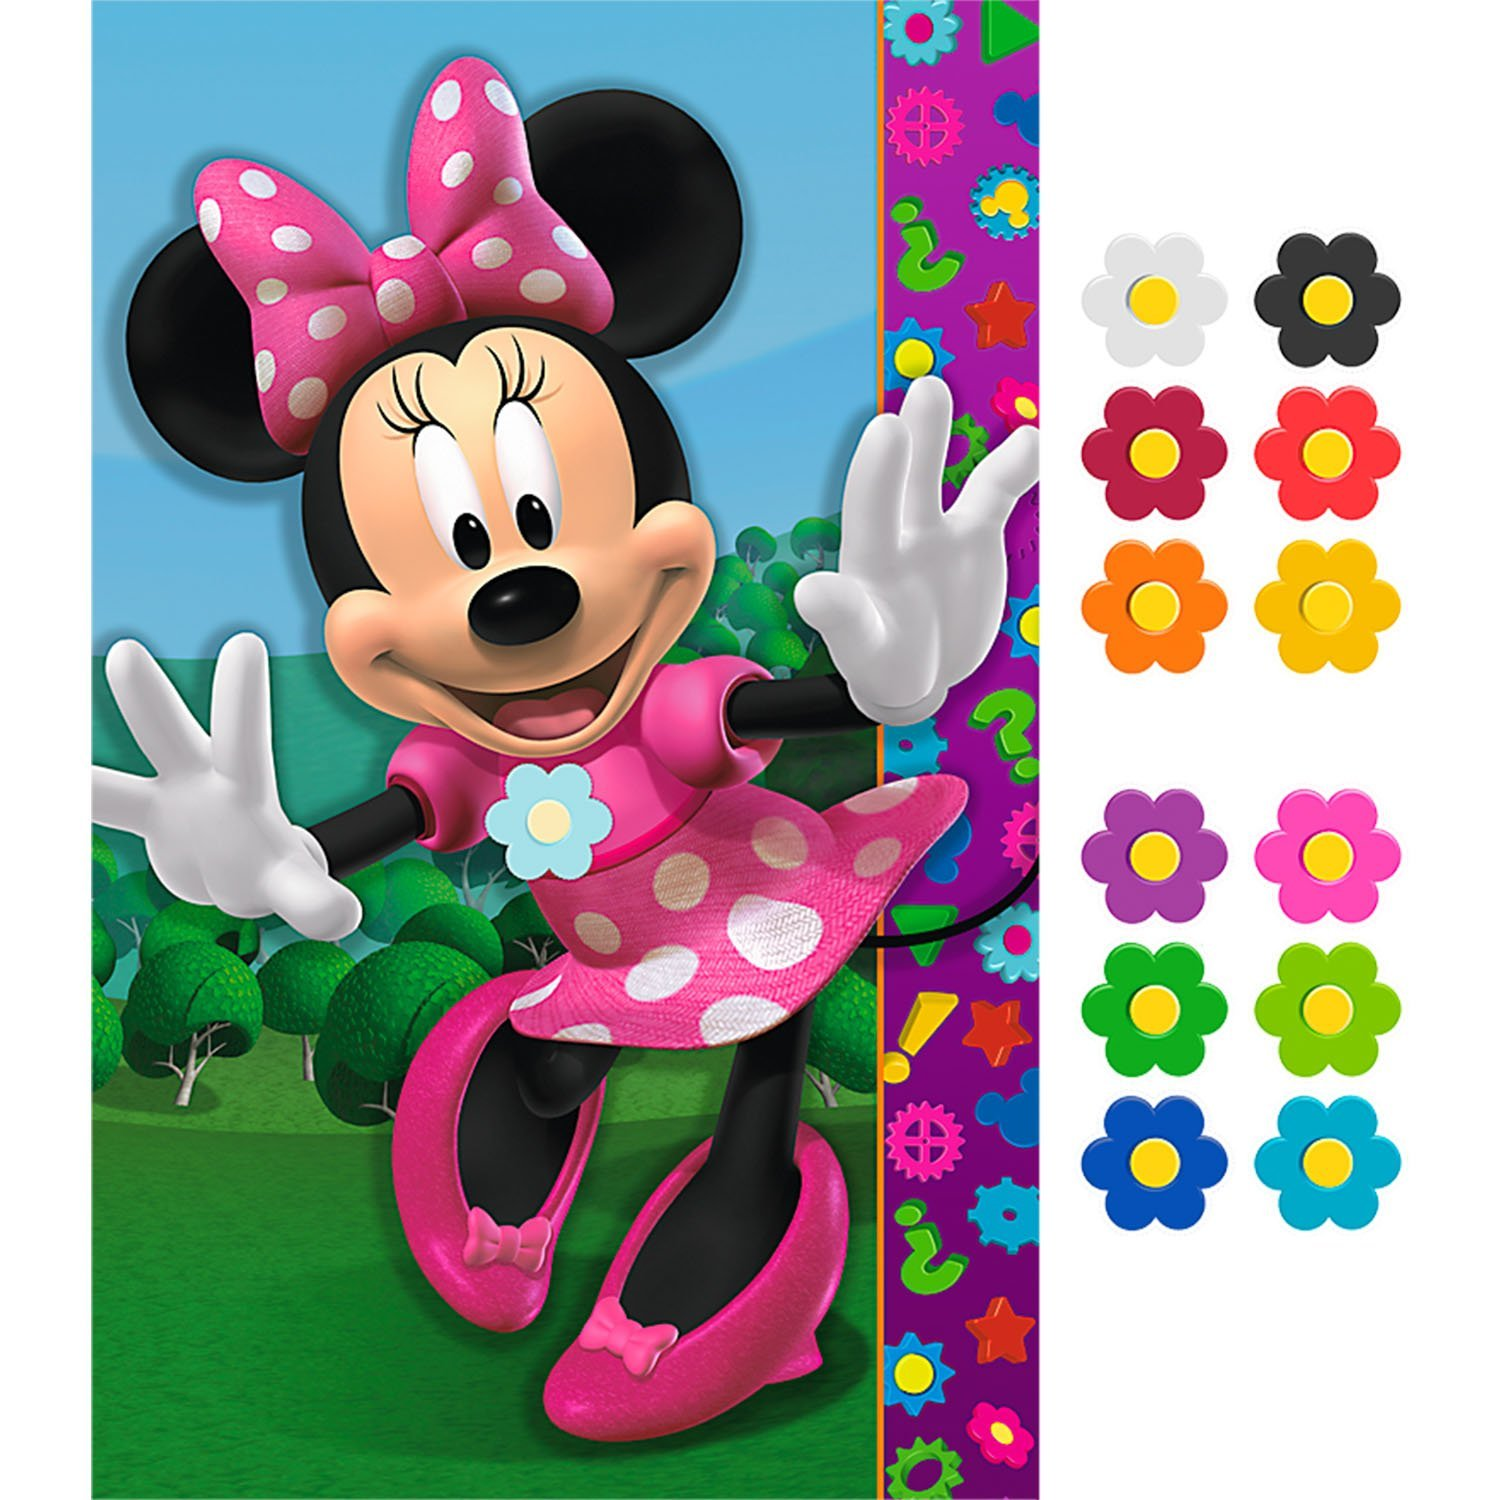 Minnie Mouse Wallpapers (50 Wallpapers) - Adorable Wallpapers